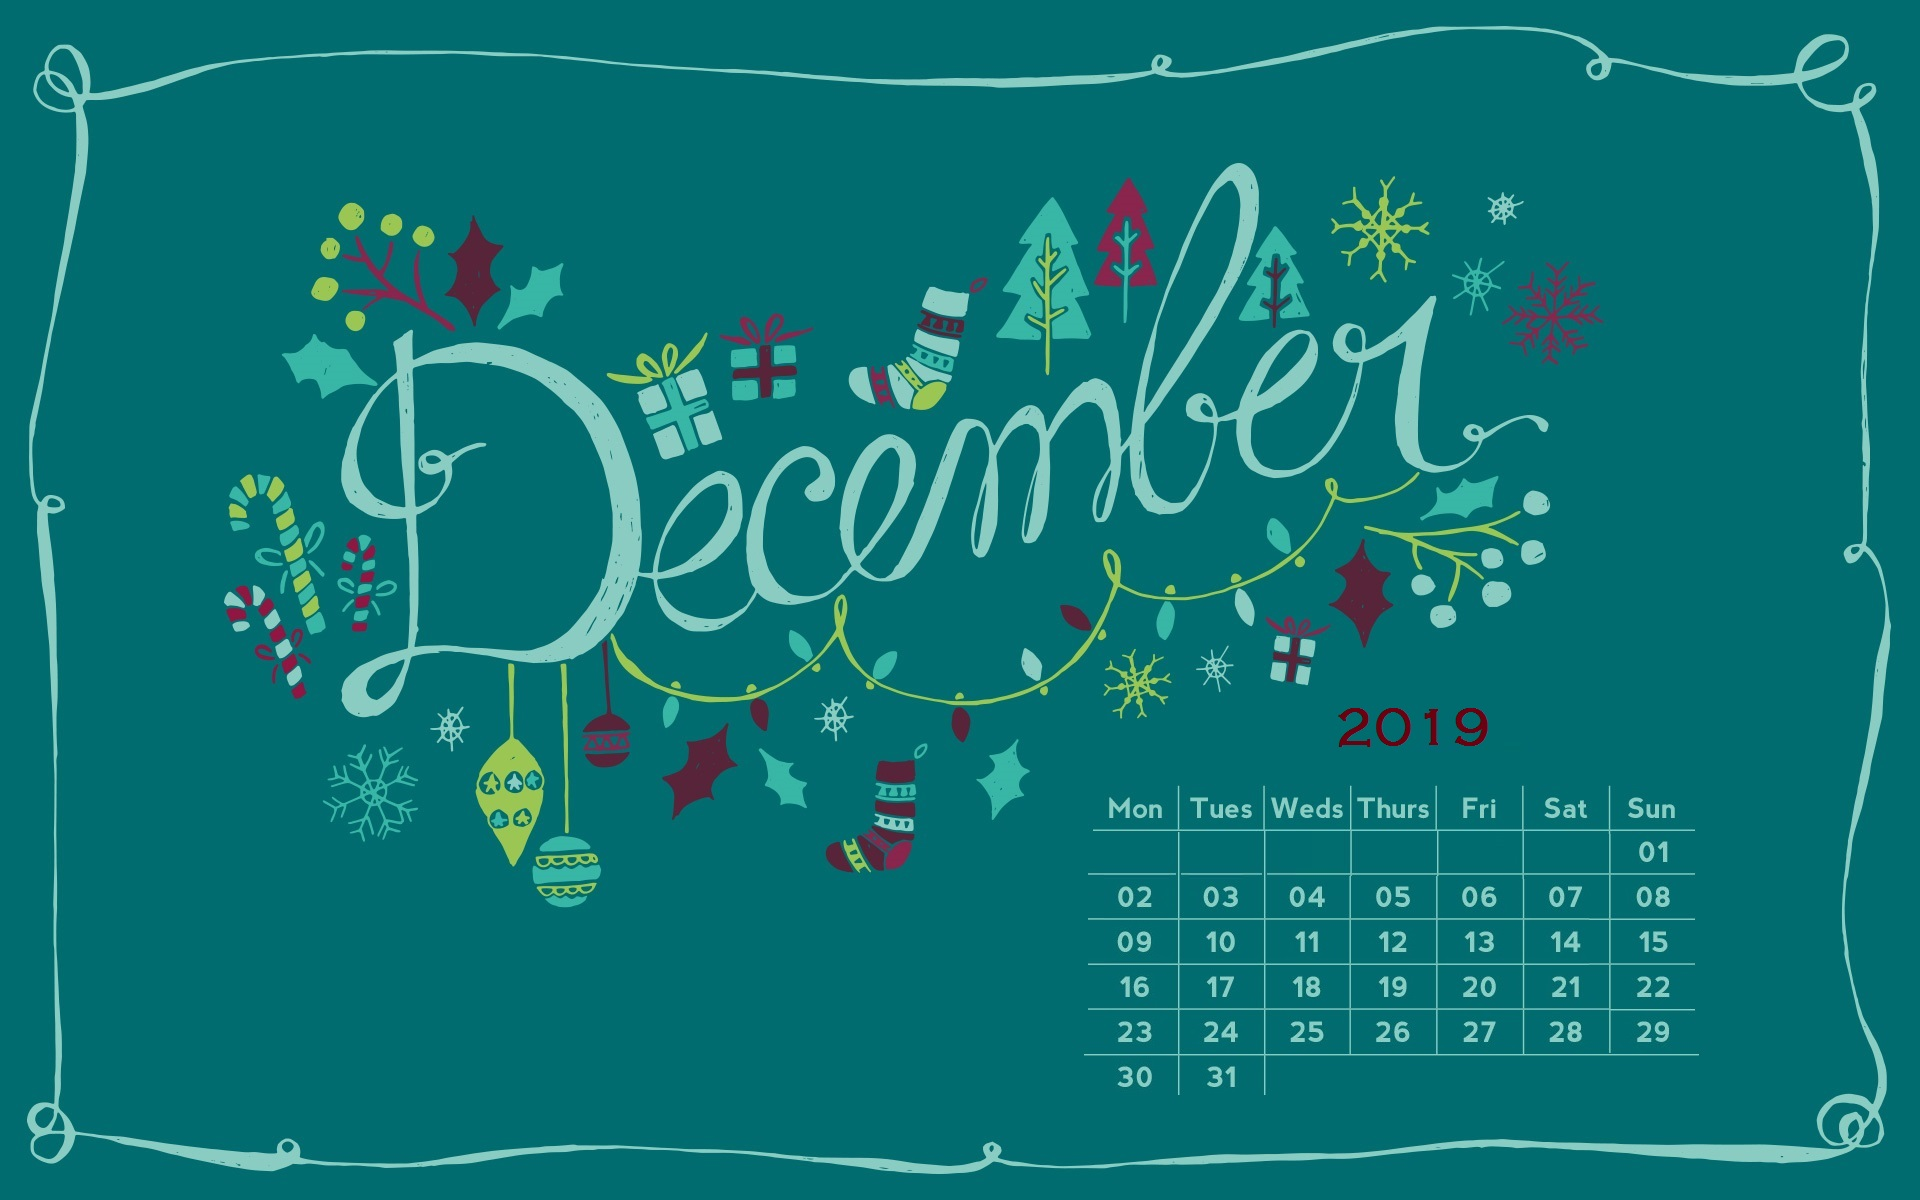 December 2019 Screensaver Background Wallpaper